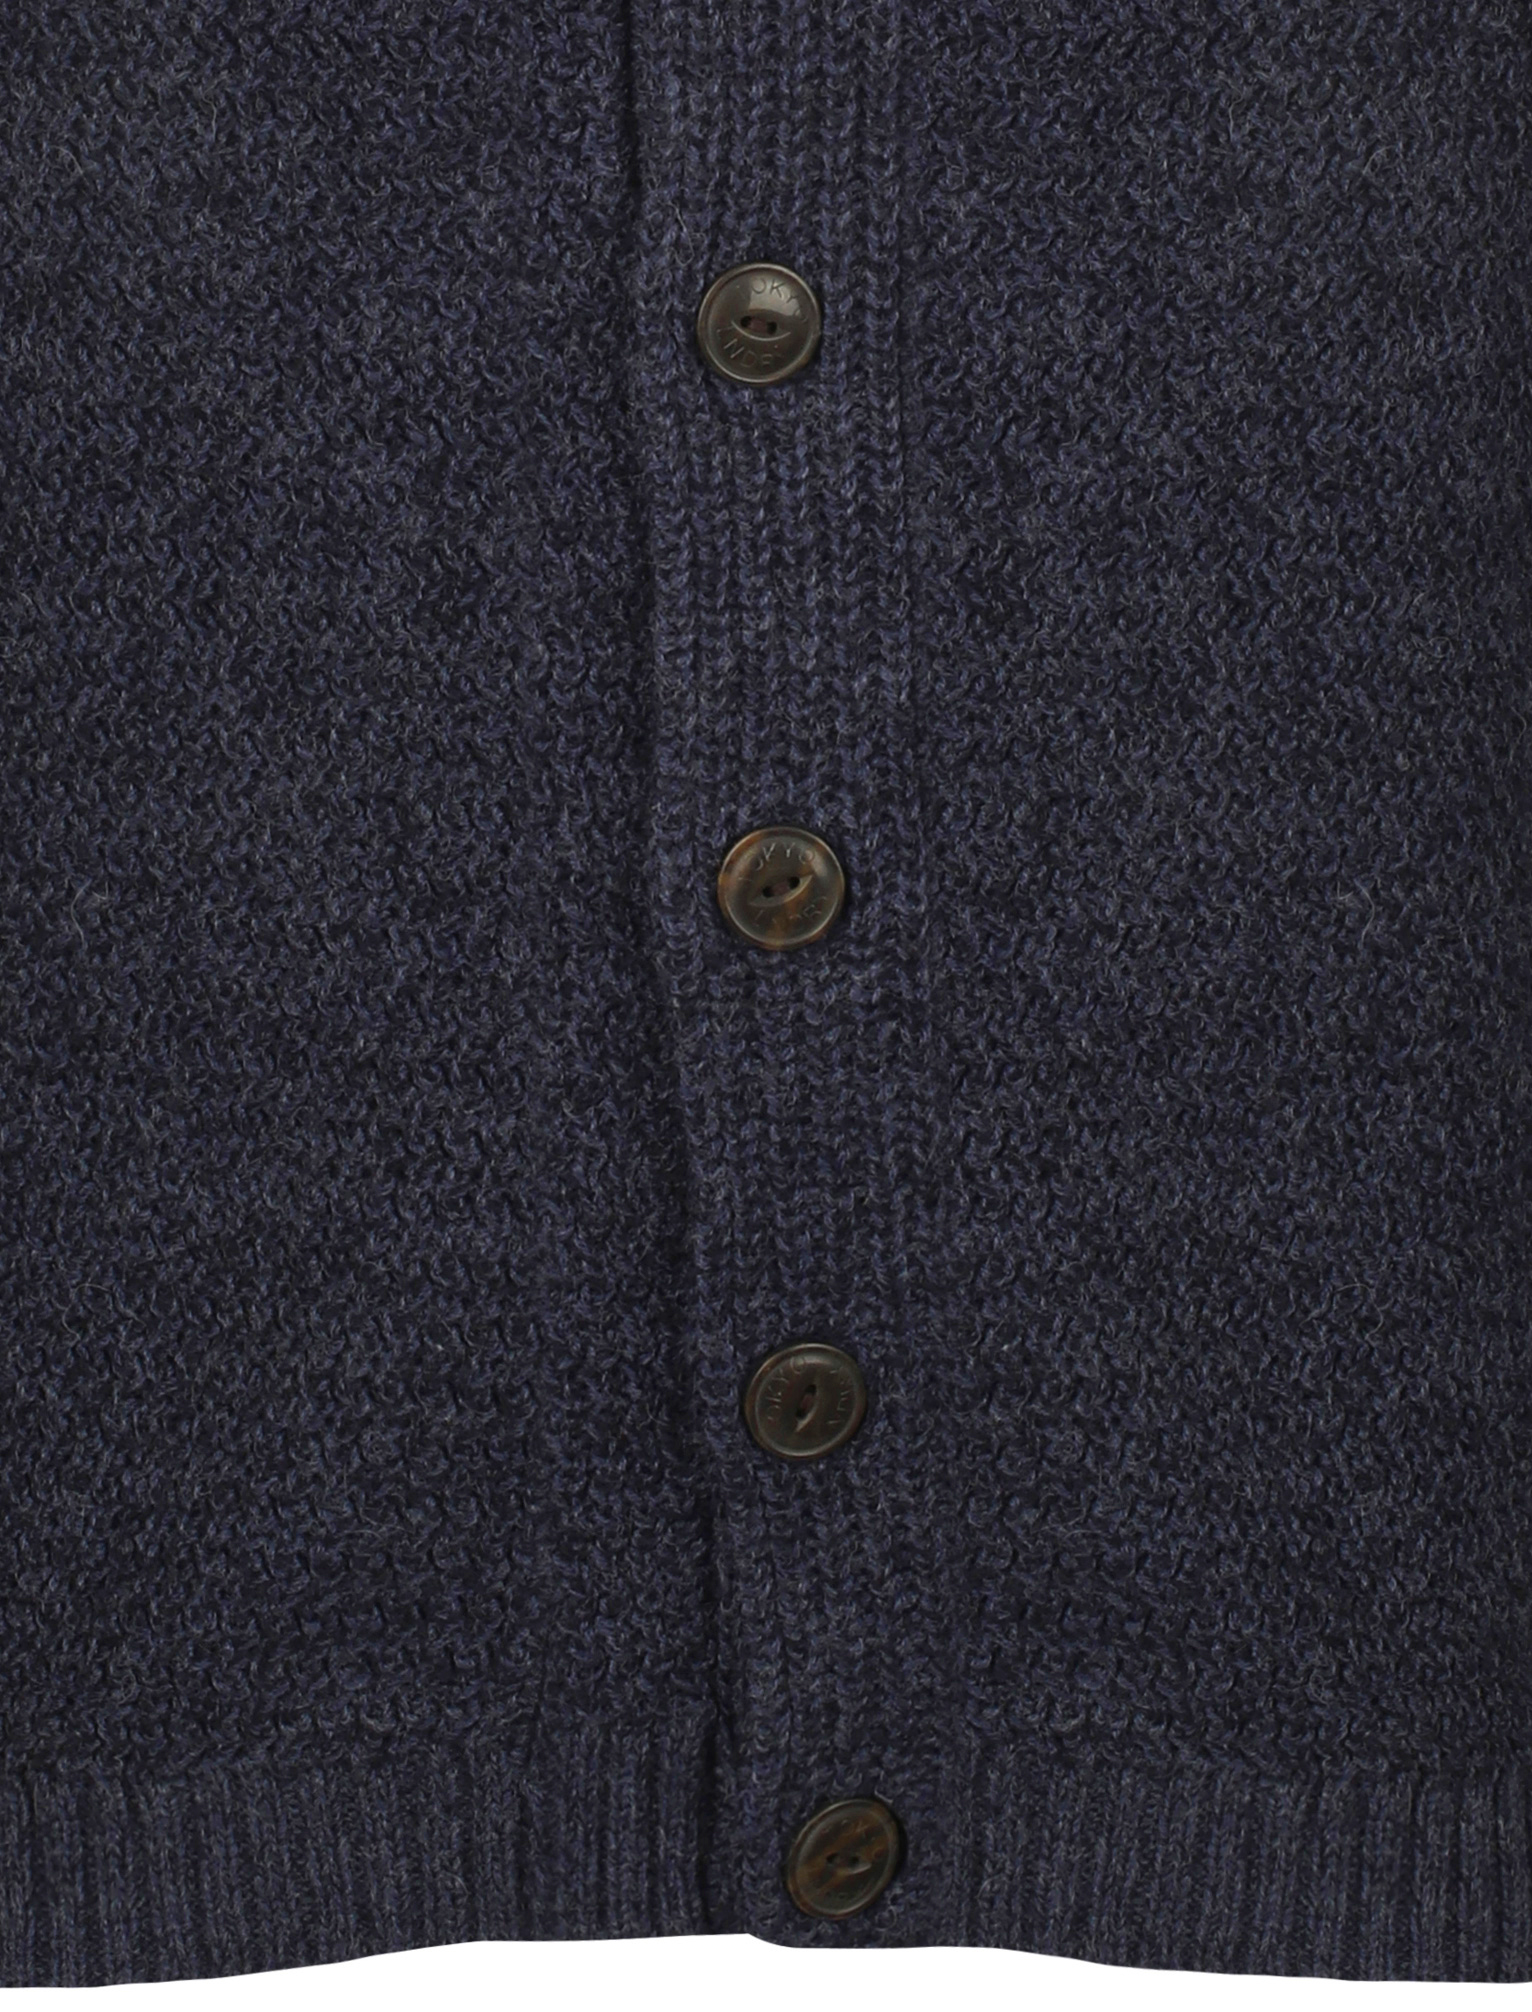 New-Mens-Tokyo-Laundry-Shawl-Neck-Long-Sleeve-Wool-Blend-Cardigans-Size-S-XXL thumbnail 23